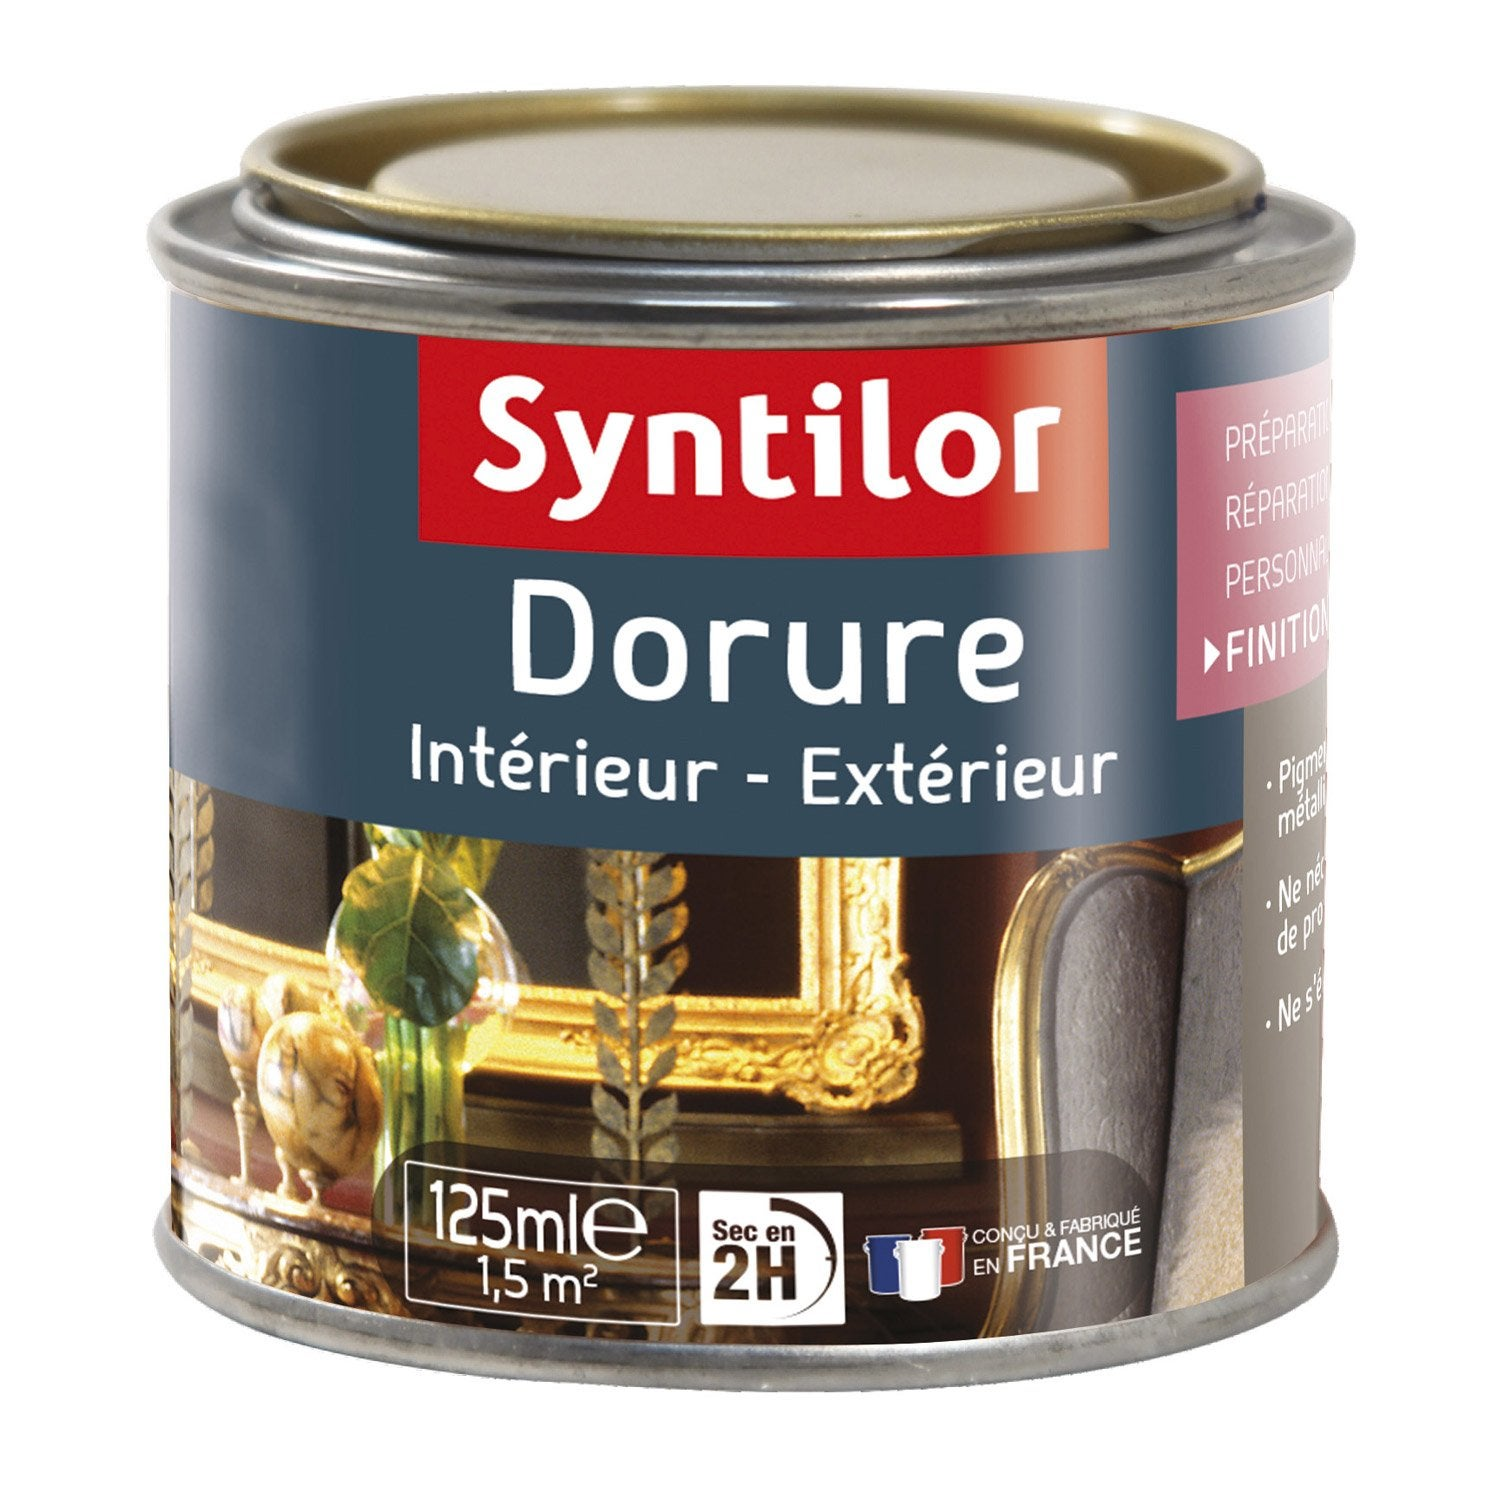 merveilleux Dorure, pailleté, SYNTILOR, or riche 0.125 l